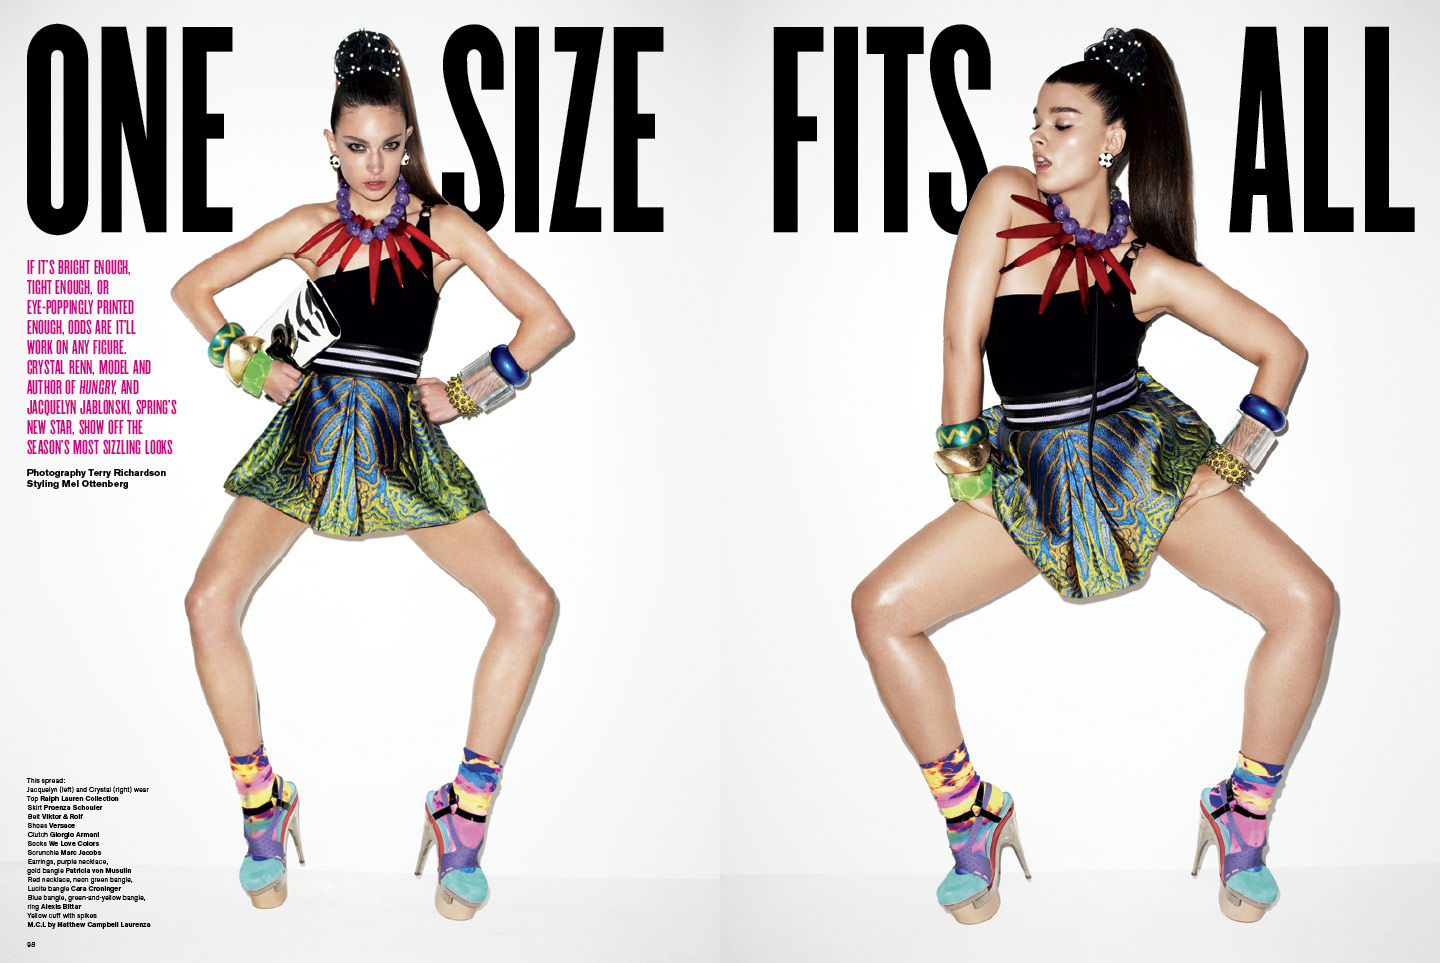 V magazine preview: 'One size fits all'